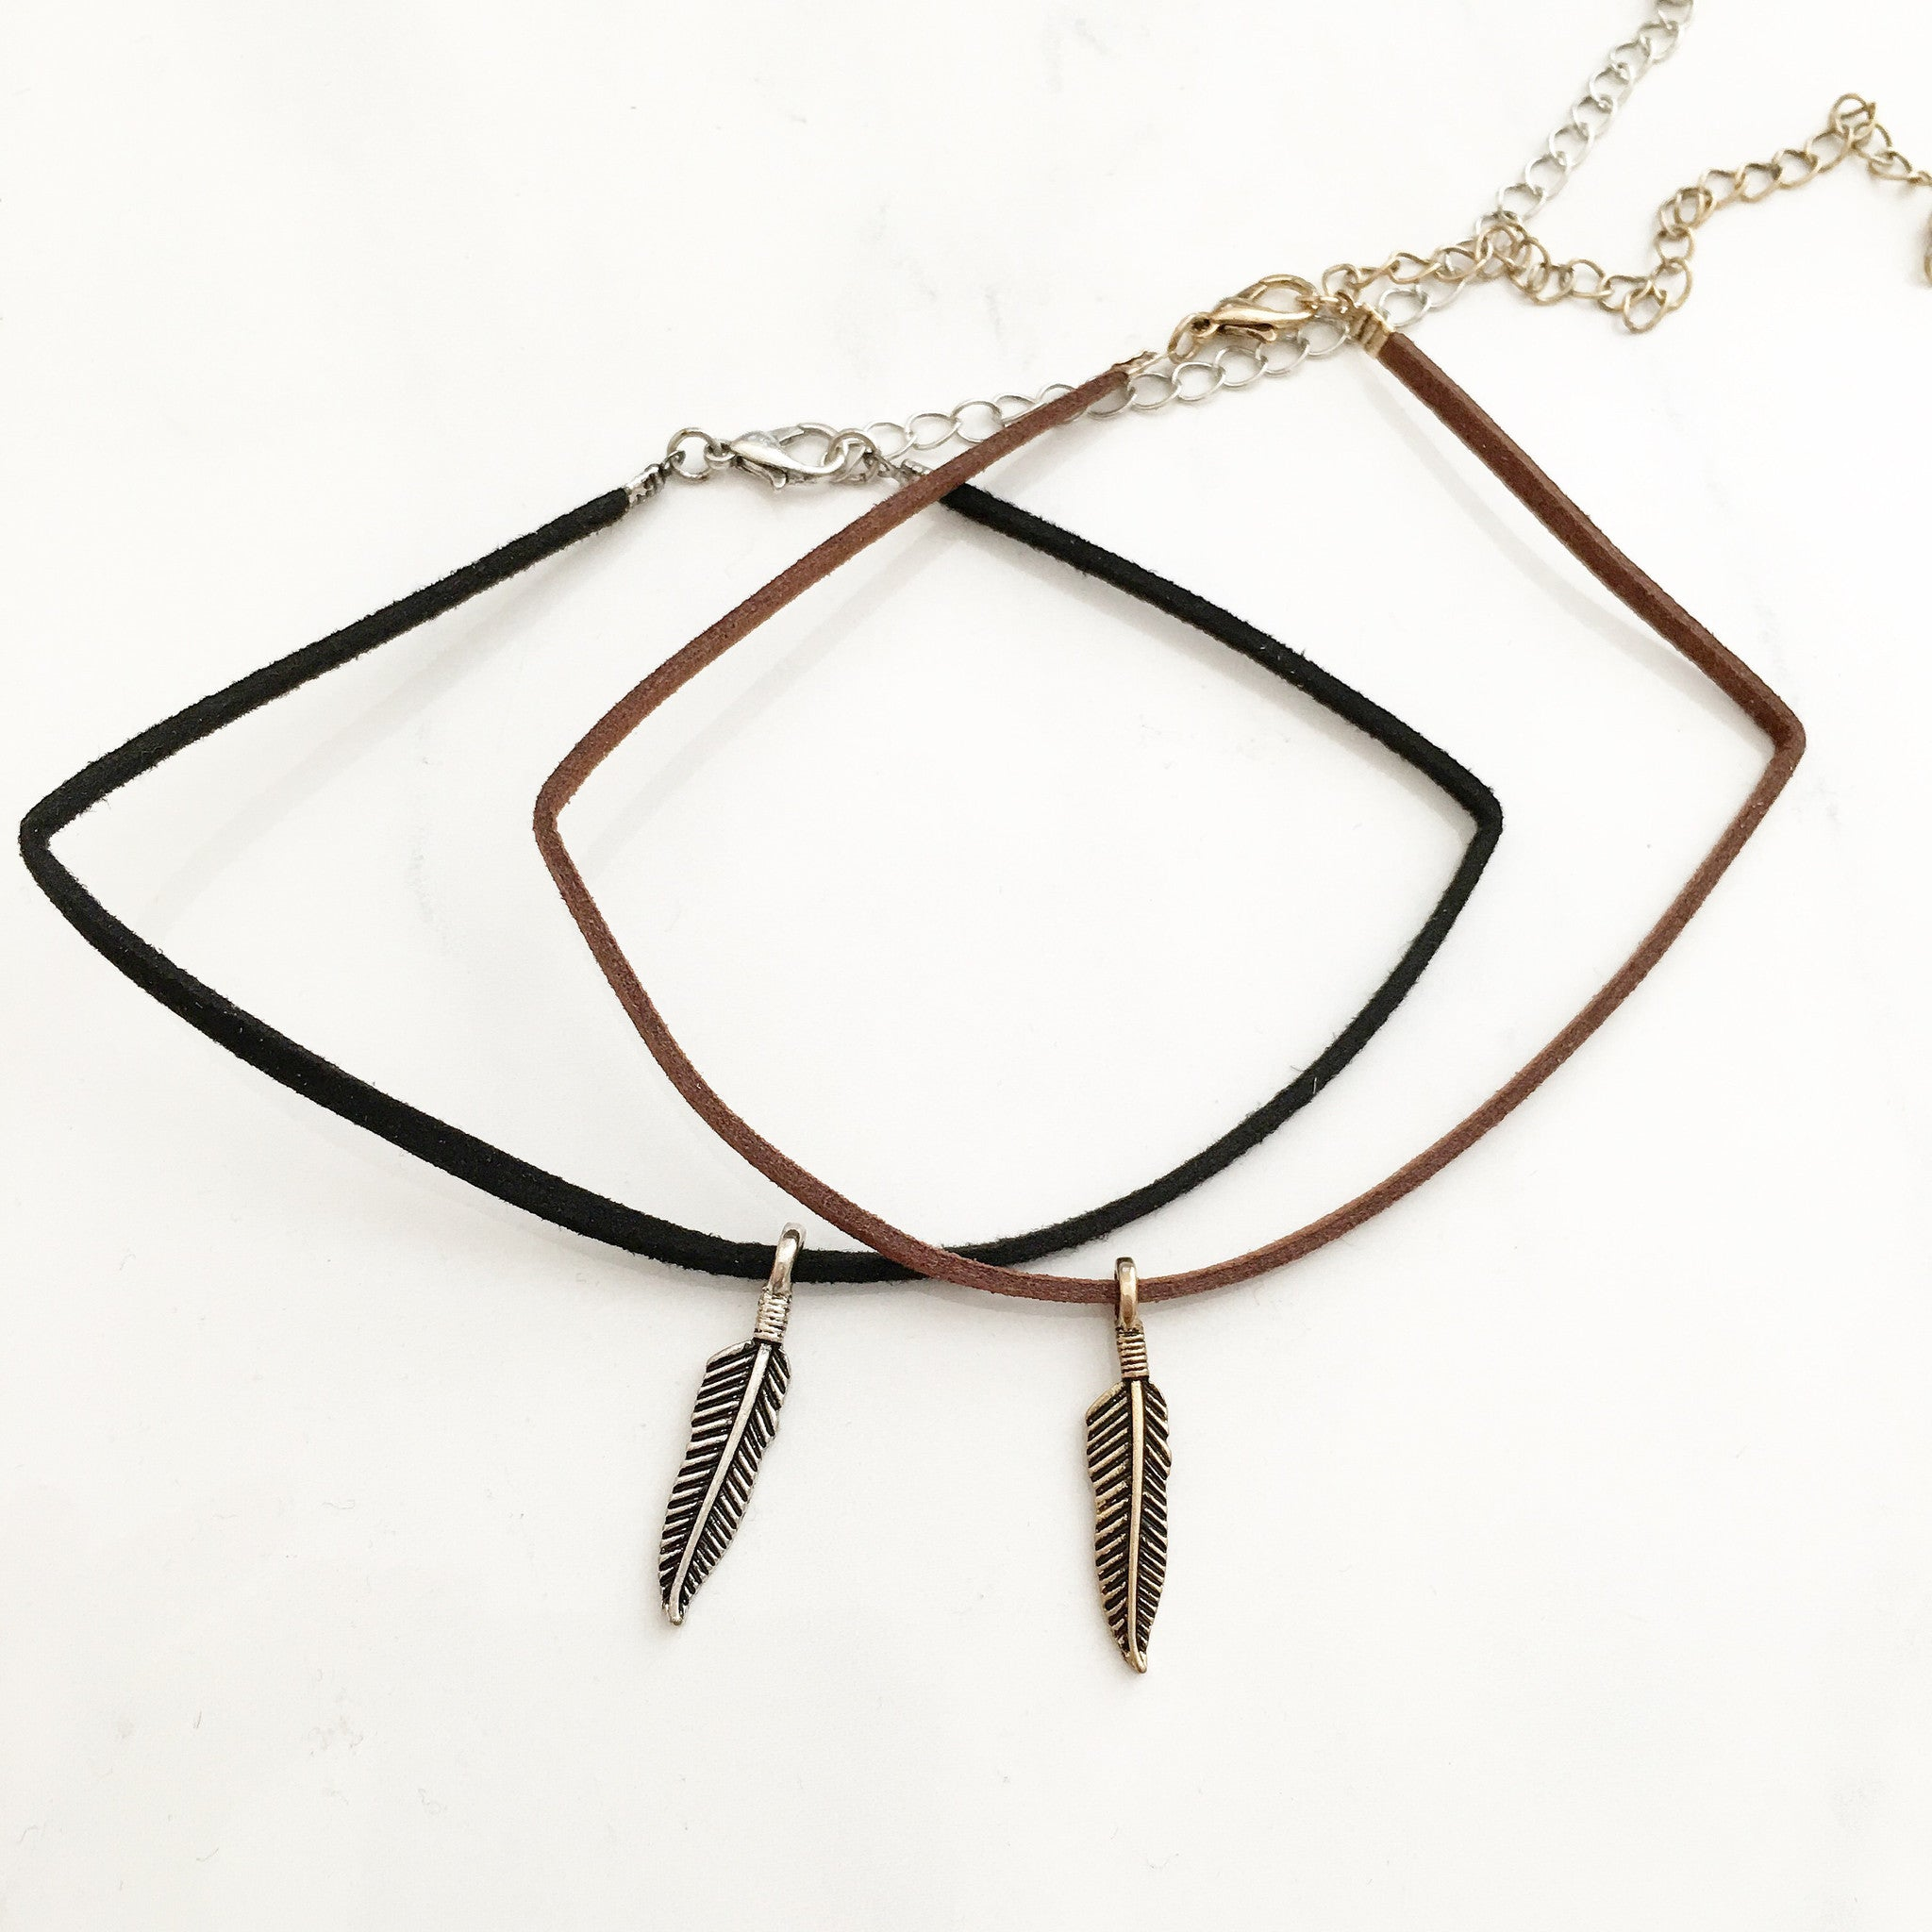 ANTIQUE FEATHER CHOKER -Necklace